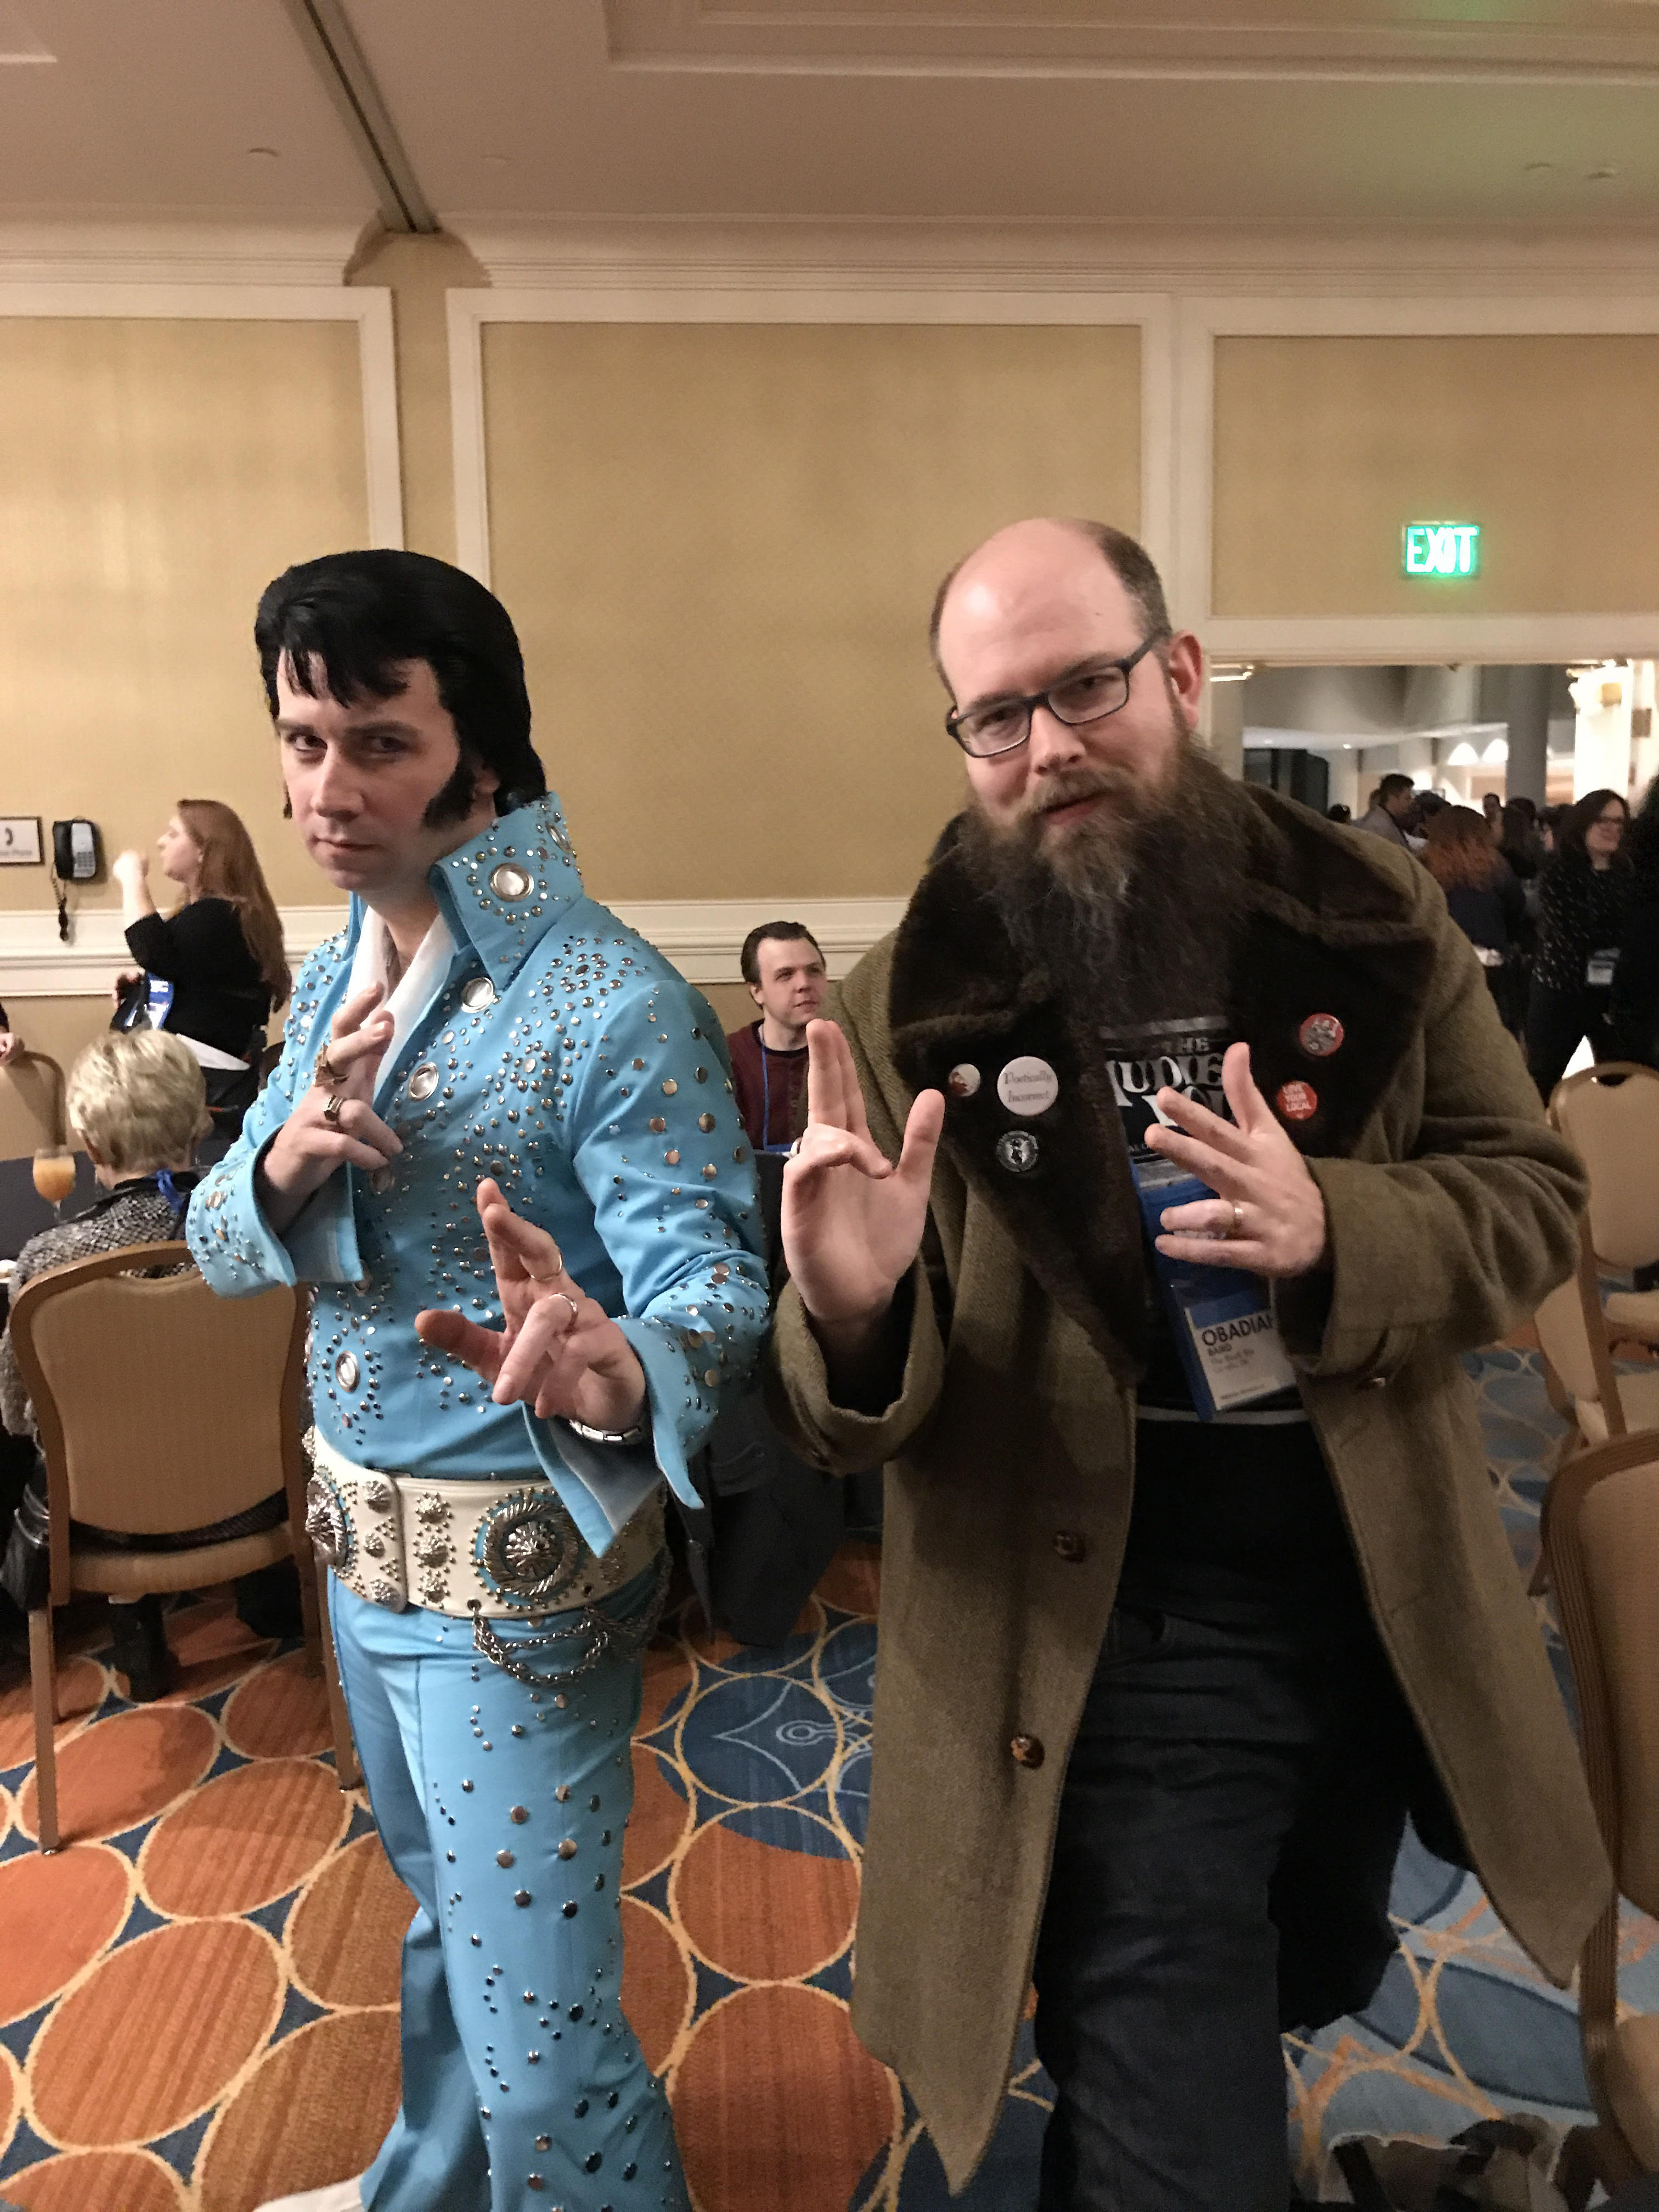 """Obadiah Baird of The Book Bin strikes a pose with """"Elvis"""" at the Ingram reception."""